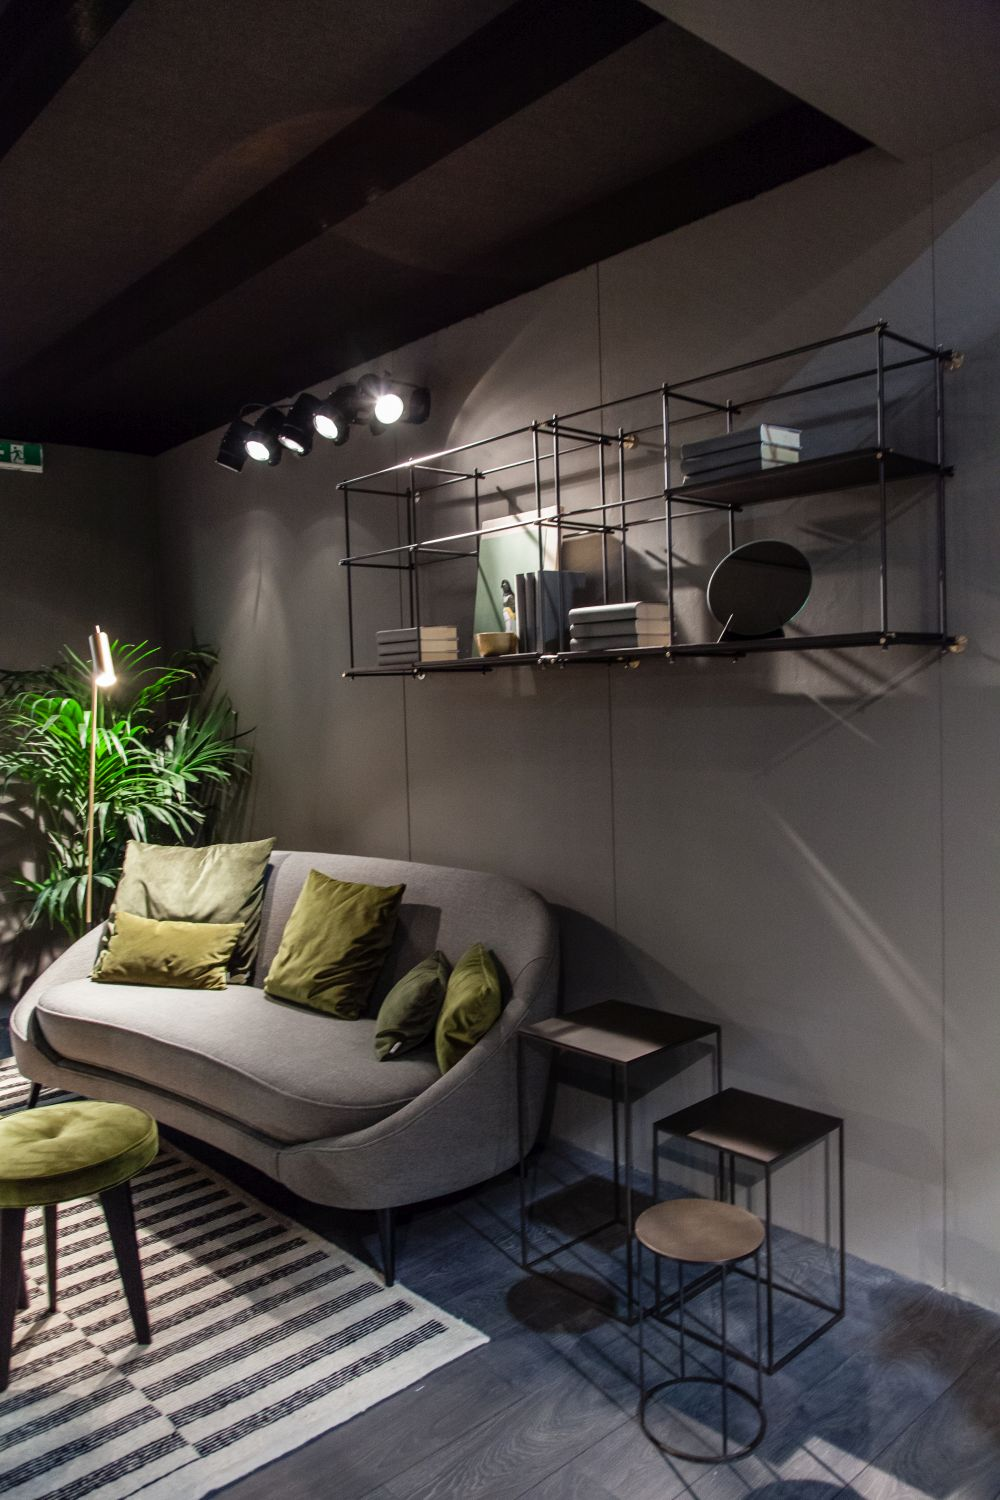 These sleek wire shelves have a chic industrial look and maintain an open and spacious feel throughout the room